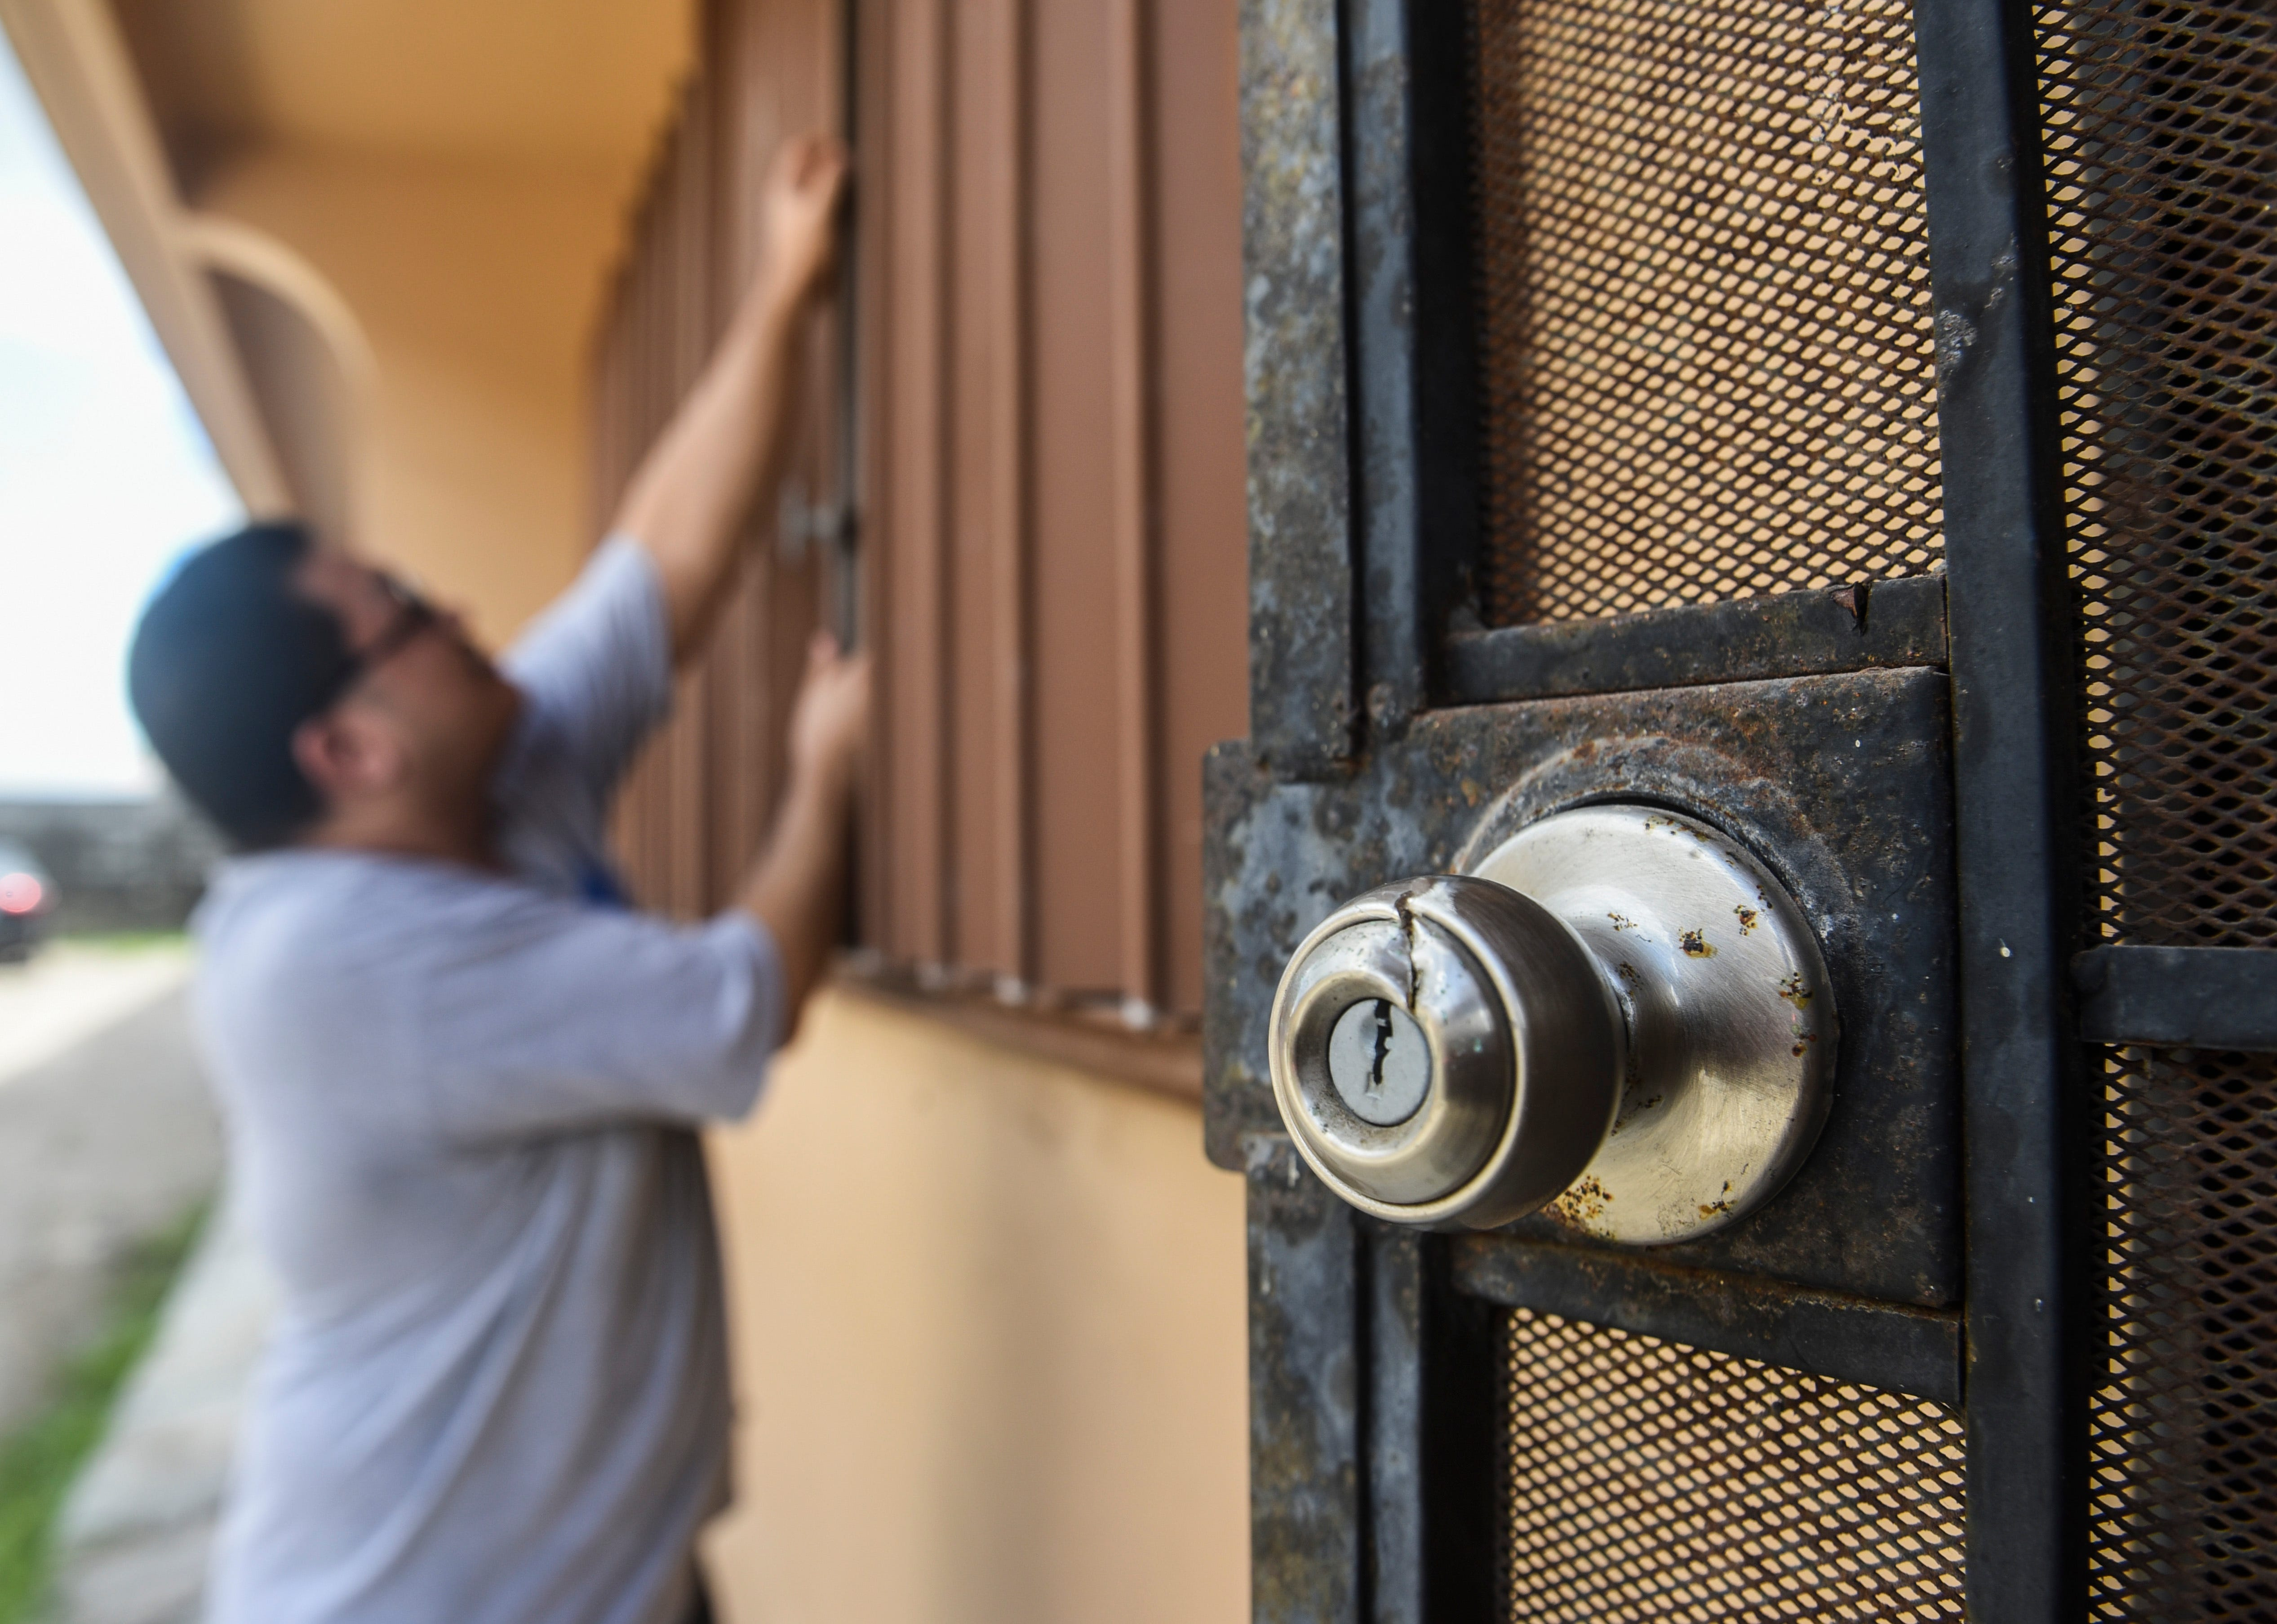 Joseph Tuvera, 36, GNN Apartment resident, closes a window shutter to his unit in Harmon on Friday, July 27, 2018. Tuvera said damage seen on the knob and frame of the security door, right, were due to a machete-wielding youth who chased after him and his mother during the early morning hours of Thursday, July 26.